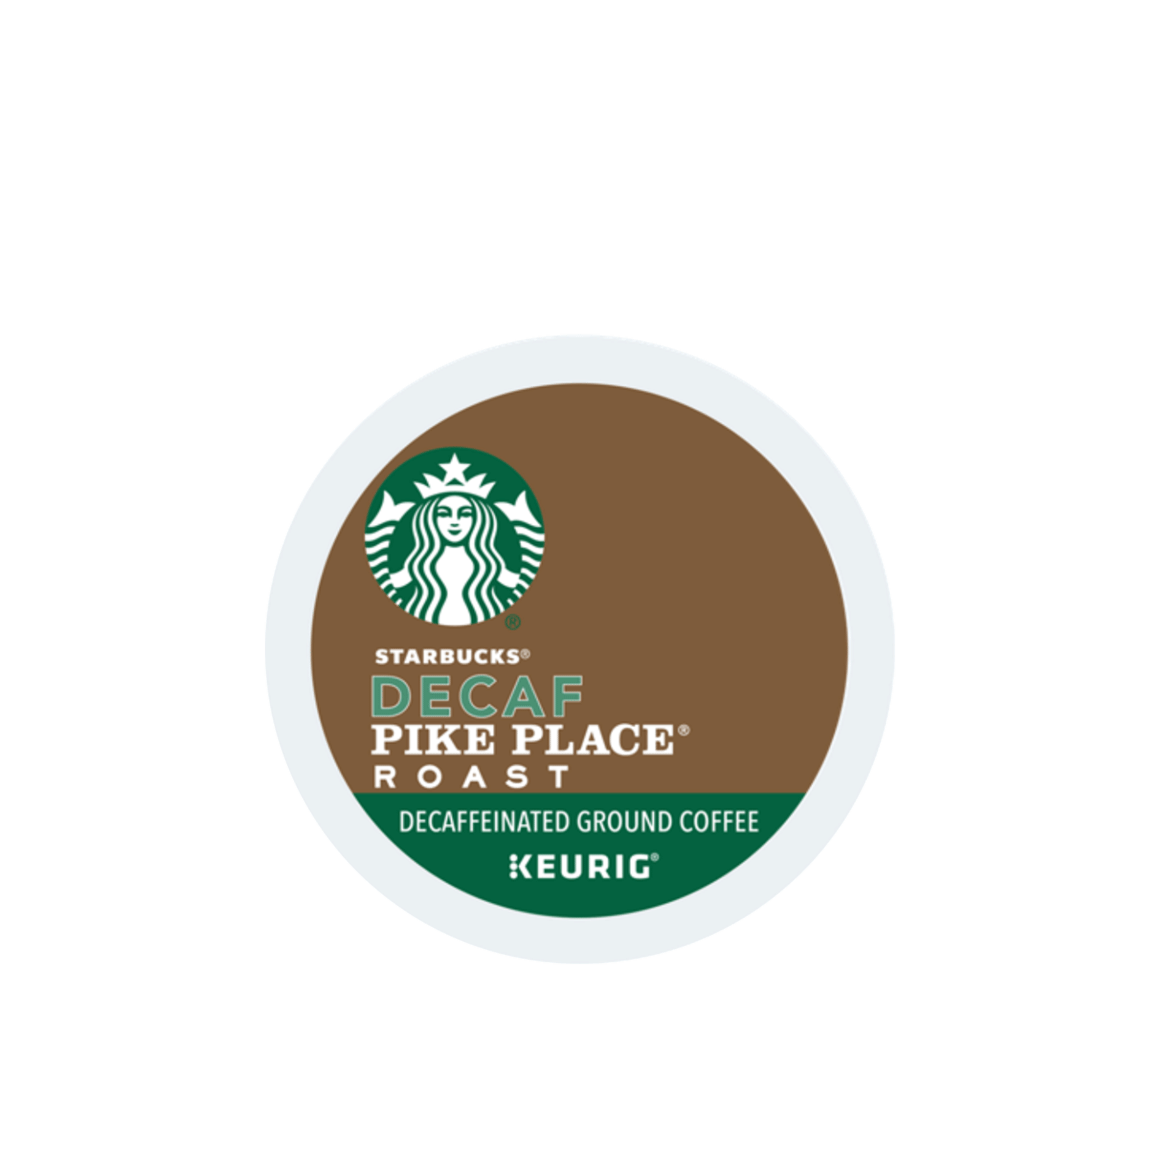 starbucks k cup decaf pike place coffee pod Image1